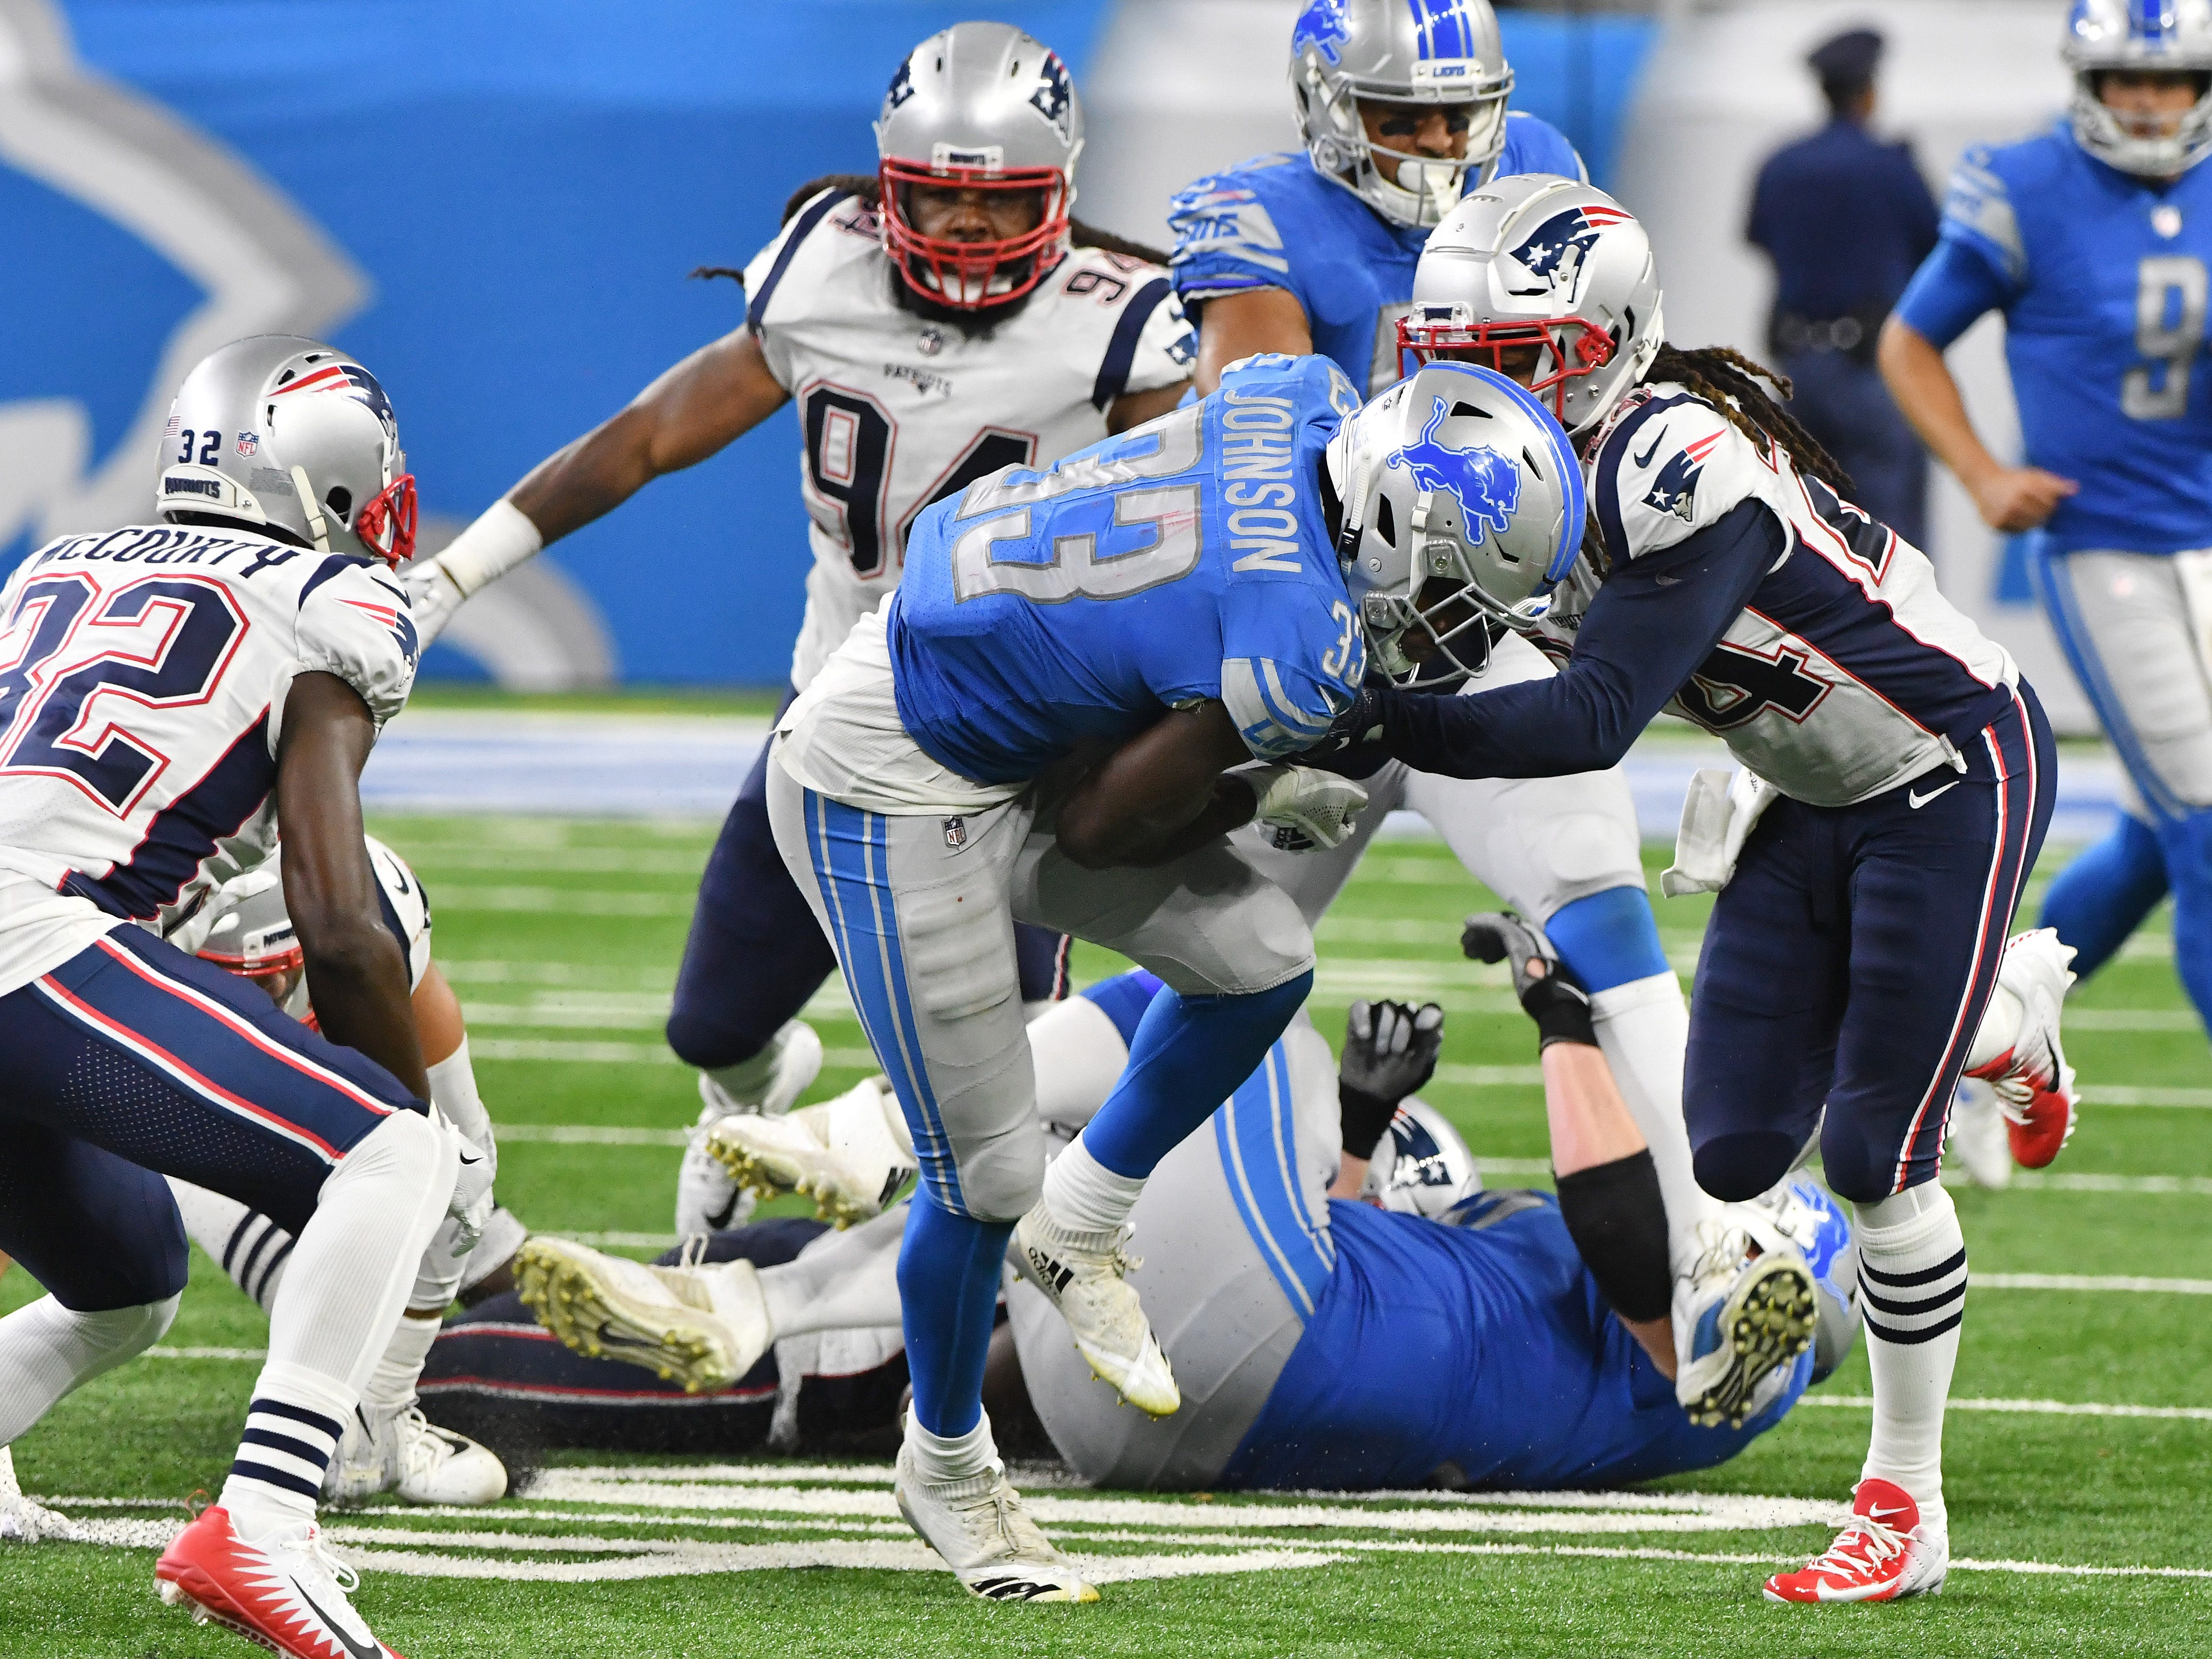 Lions running back Kerryon Johnson breaks the 100 yard mark on this run in the 4th quarter.